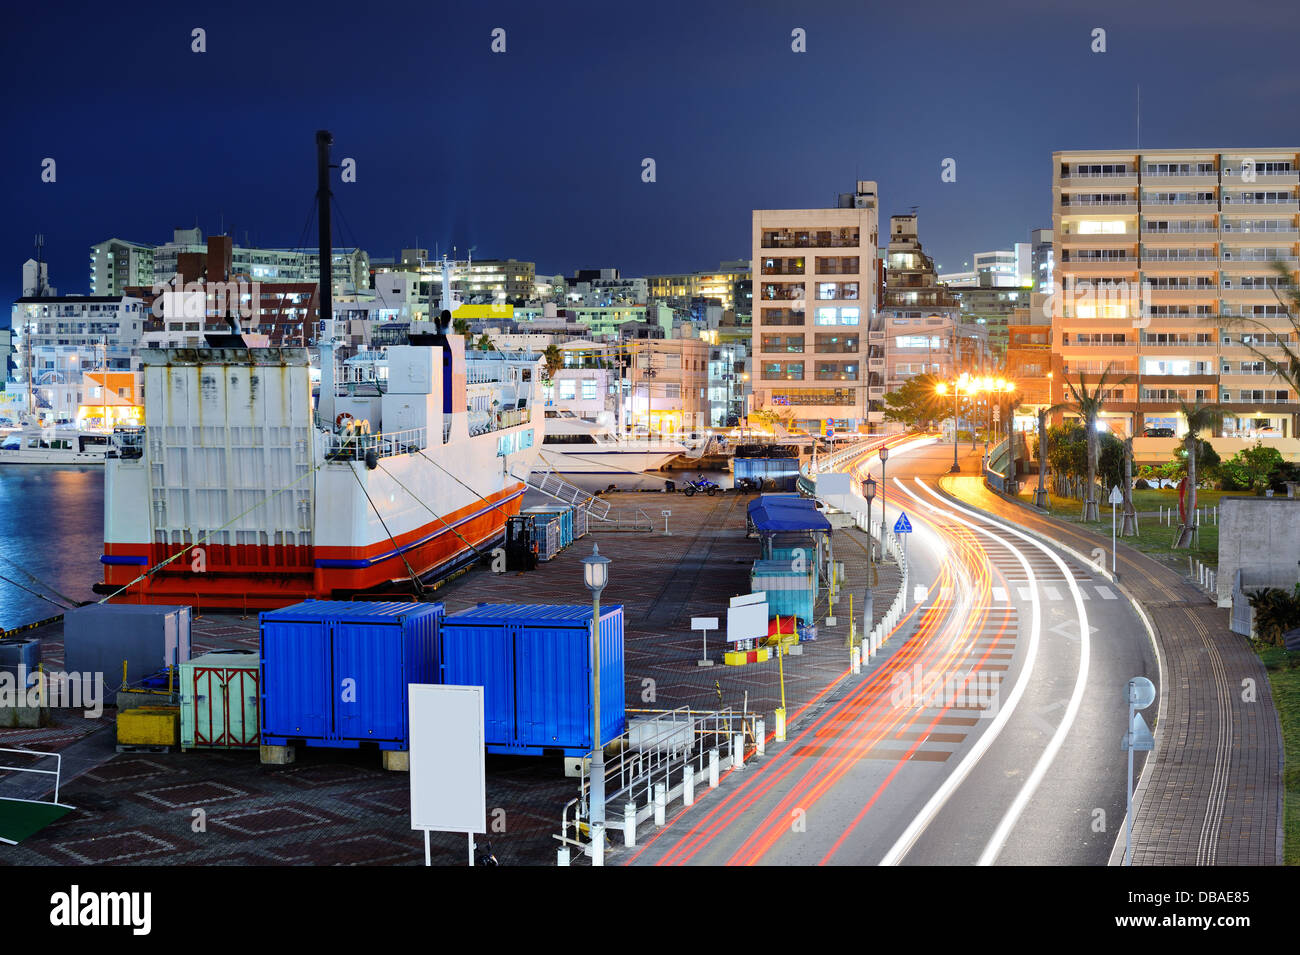 Naha, Okinawa, Japan port and cityscape. - Stock Image